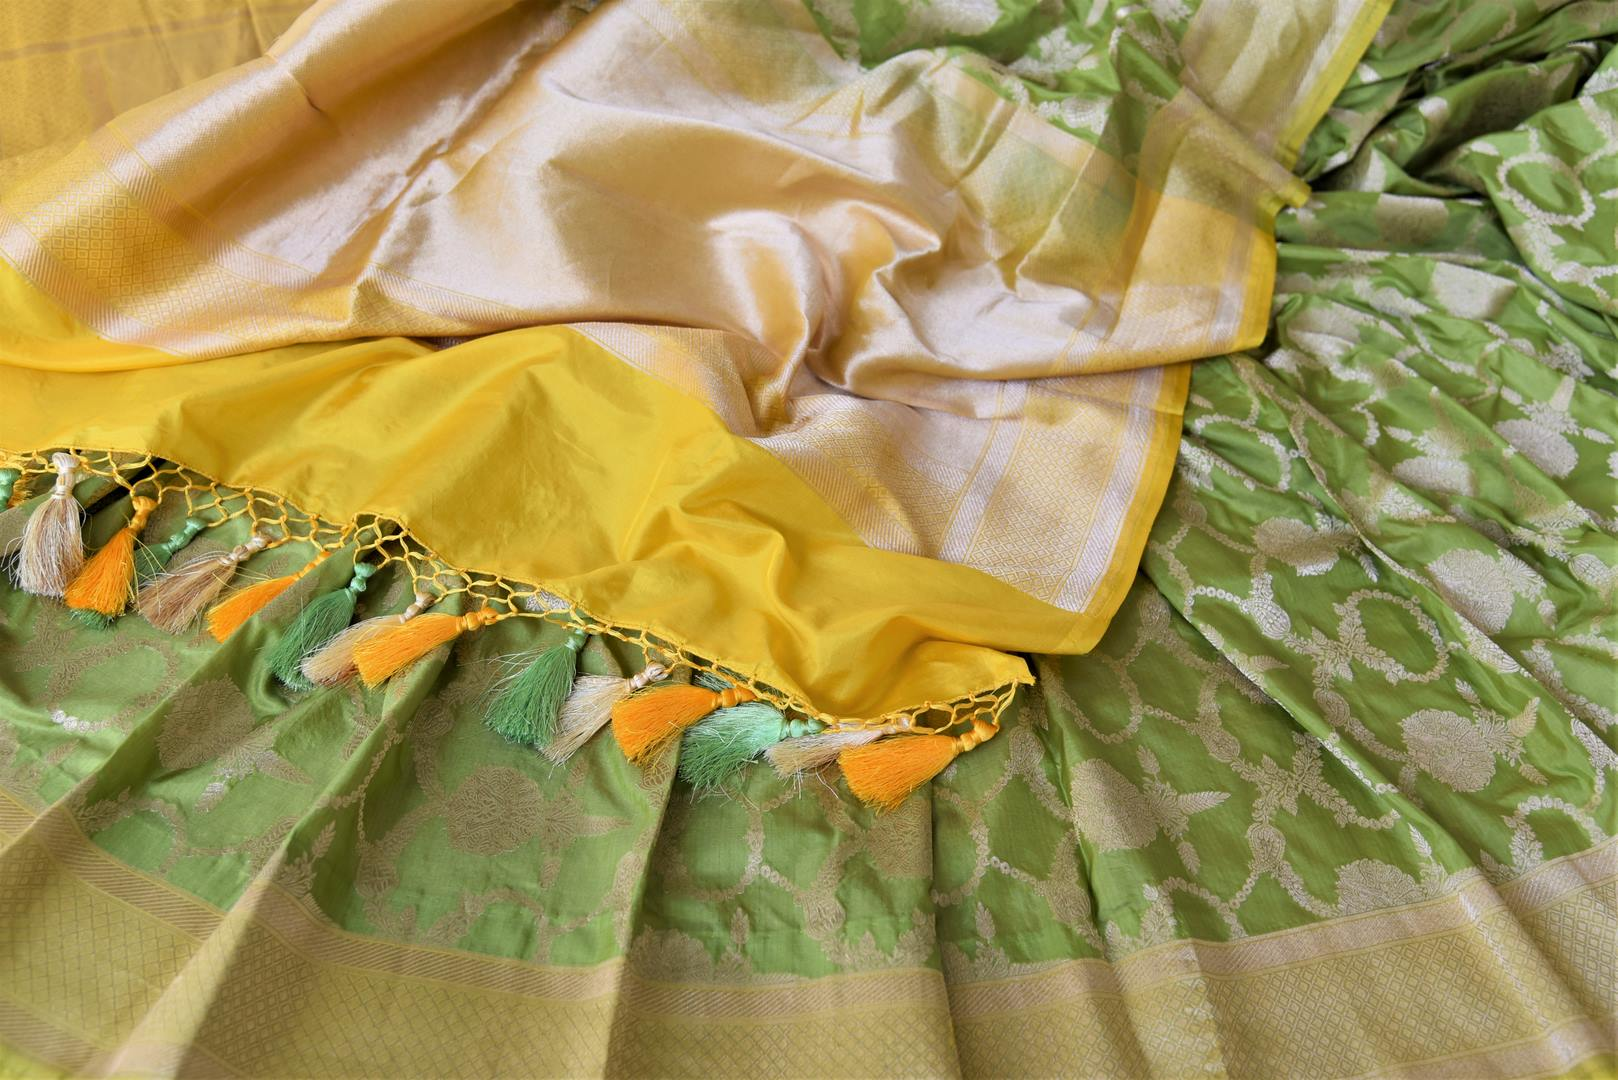 Buy pistachio green Benarasi silk saree online in USA with yellow zari border. Make your saree wardrobe rich and colorful with stunning handwoven sarees, pure silk sarees, designer sarees from Pure Elegance Indian clothing store in USA.-details